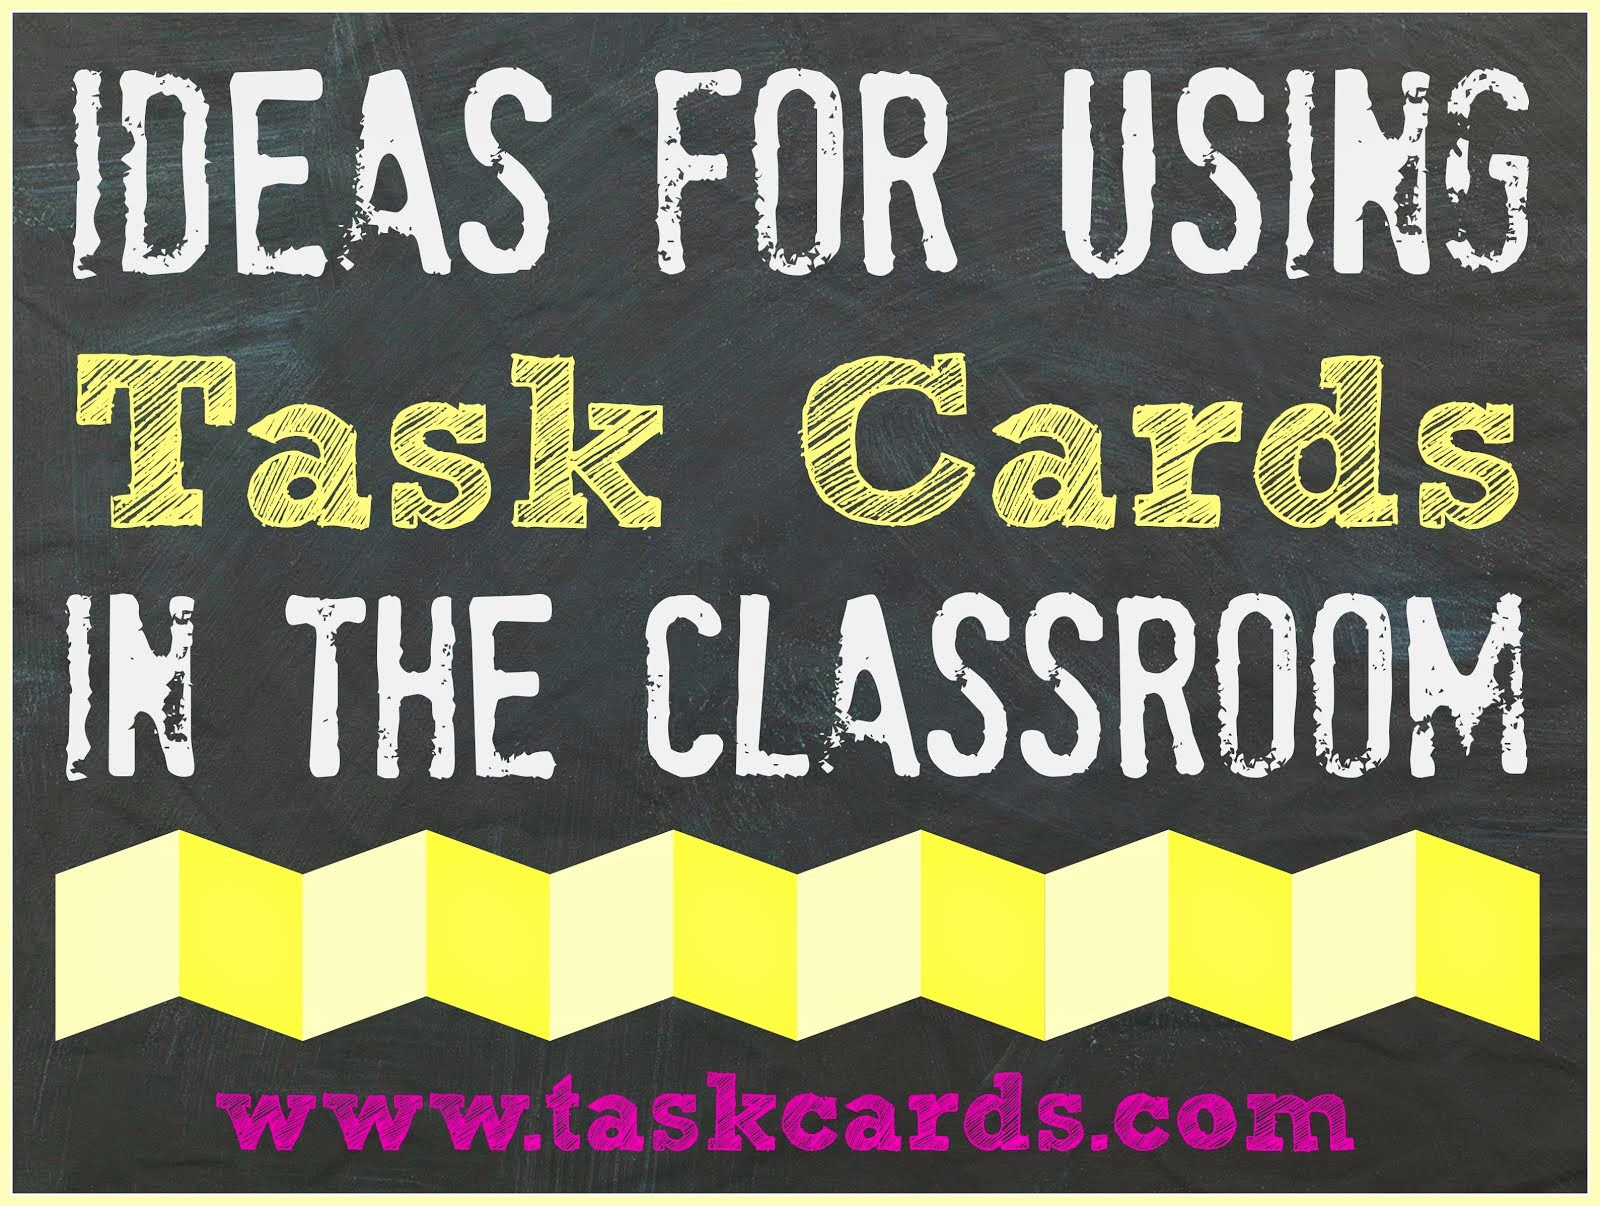 My Task Card Website